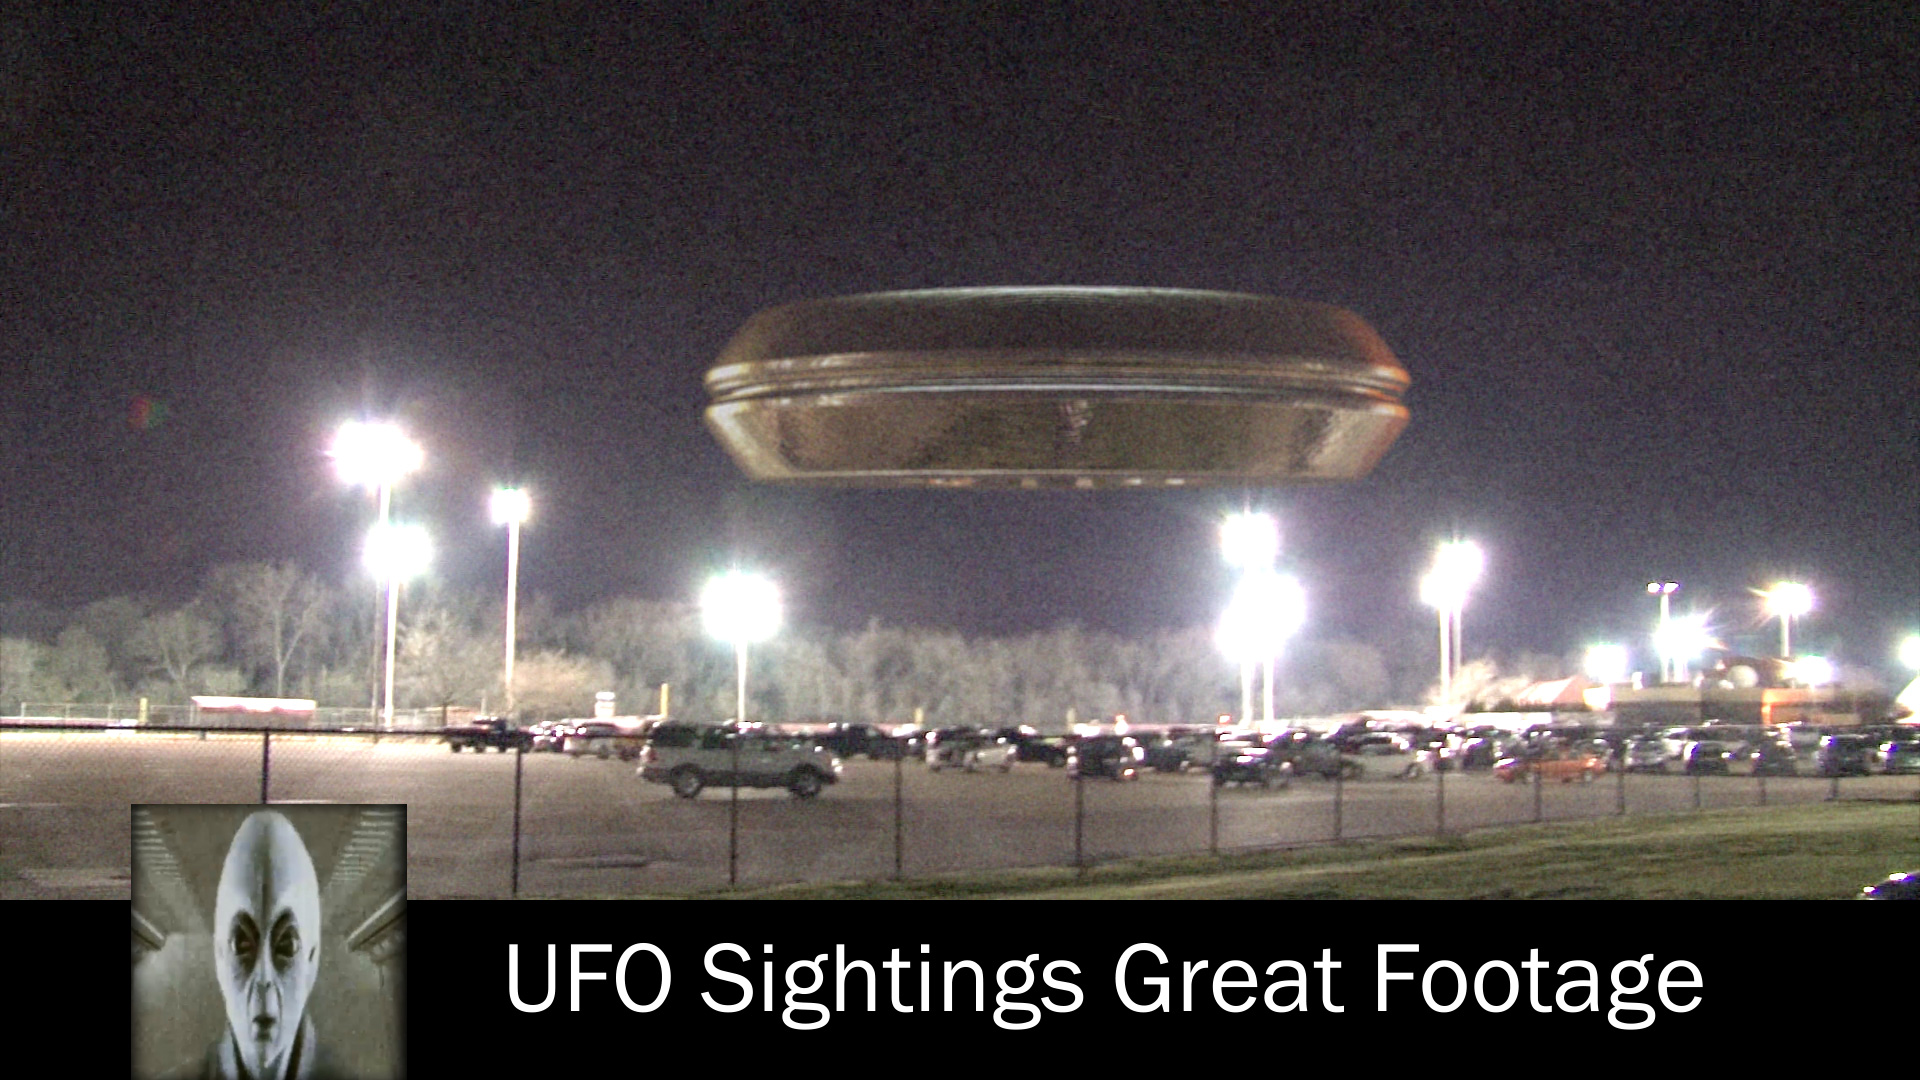 UFO Sightings Great Footage June 26th 2017